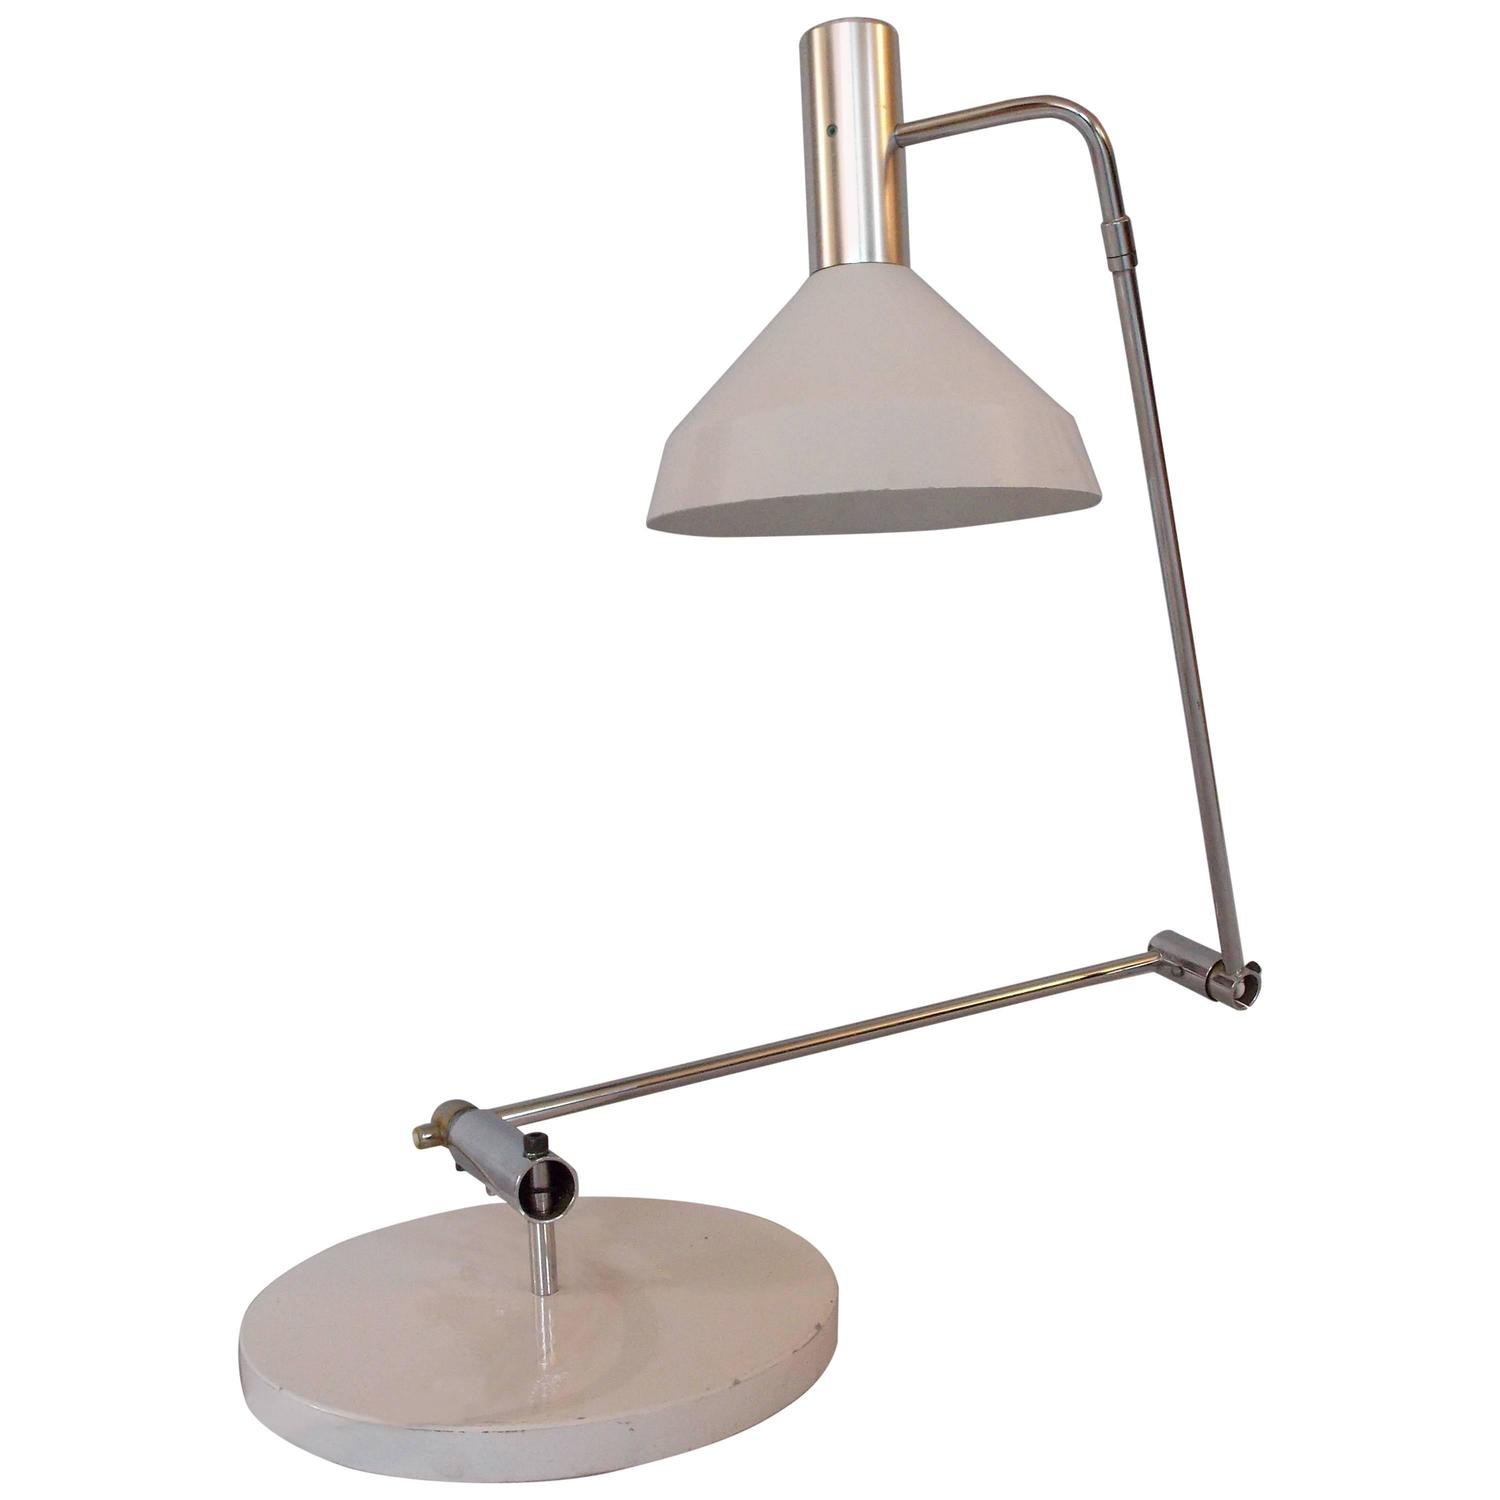 Swiss Design Lamps Gmbh - home decor - Christianapparel.us